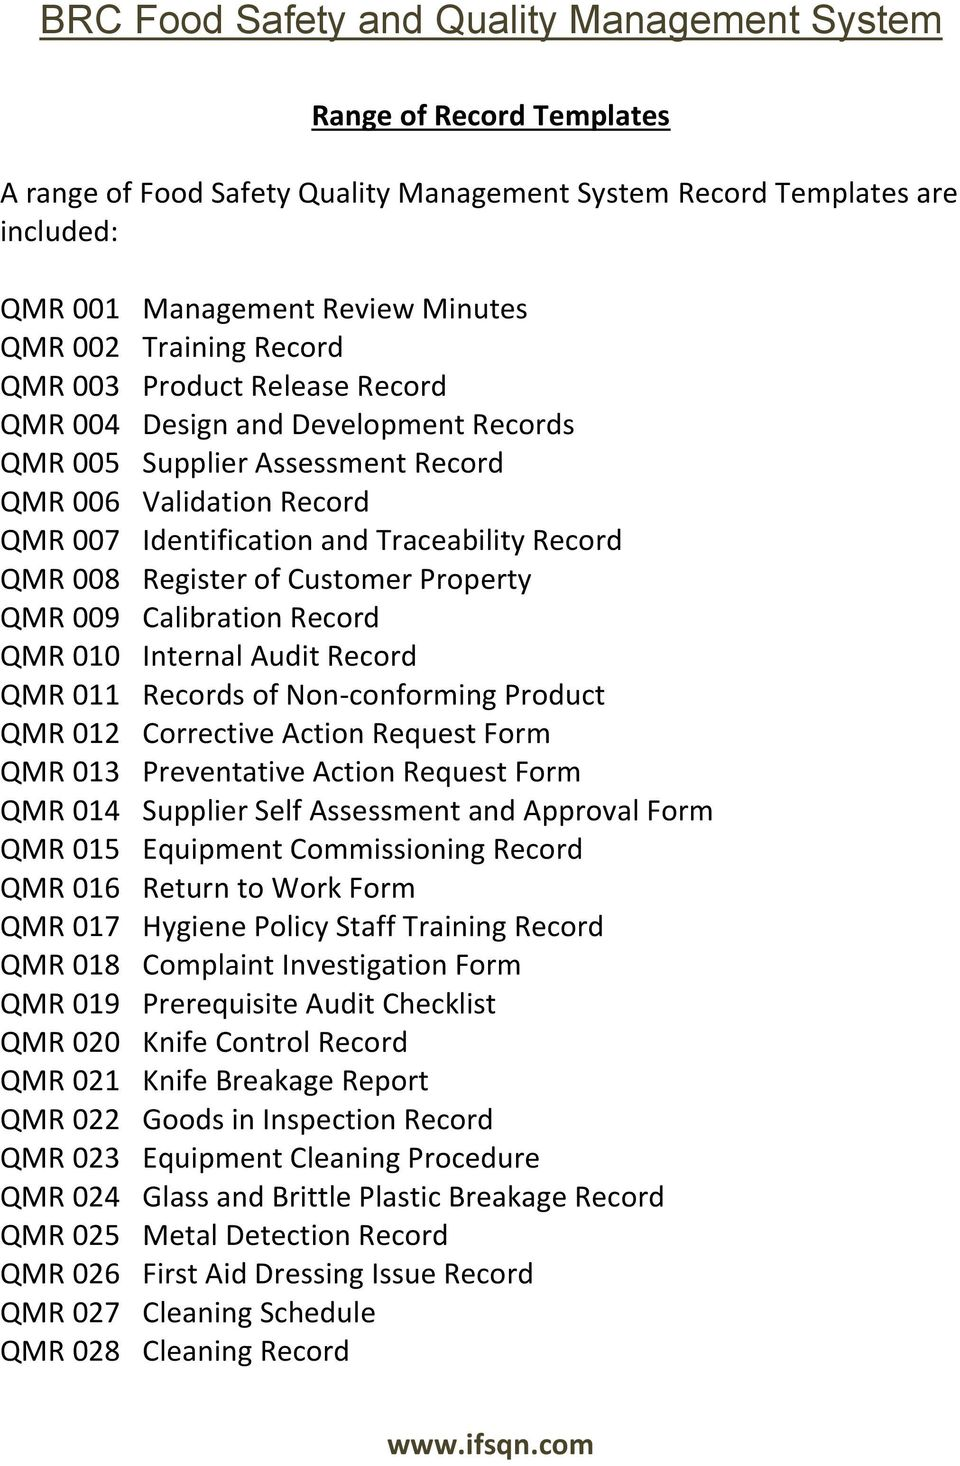 Calibration Record QMR 010 Internal Audit Record QMR 011 Records of Non-conforming Product QMR 012 Corrective Action Request Form QMR 013 Preventative Action Request Form QMR 014 Supplier Self